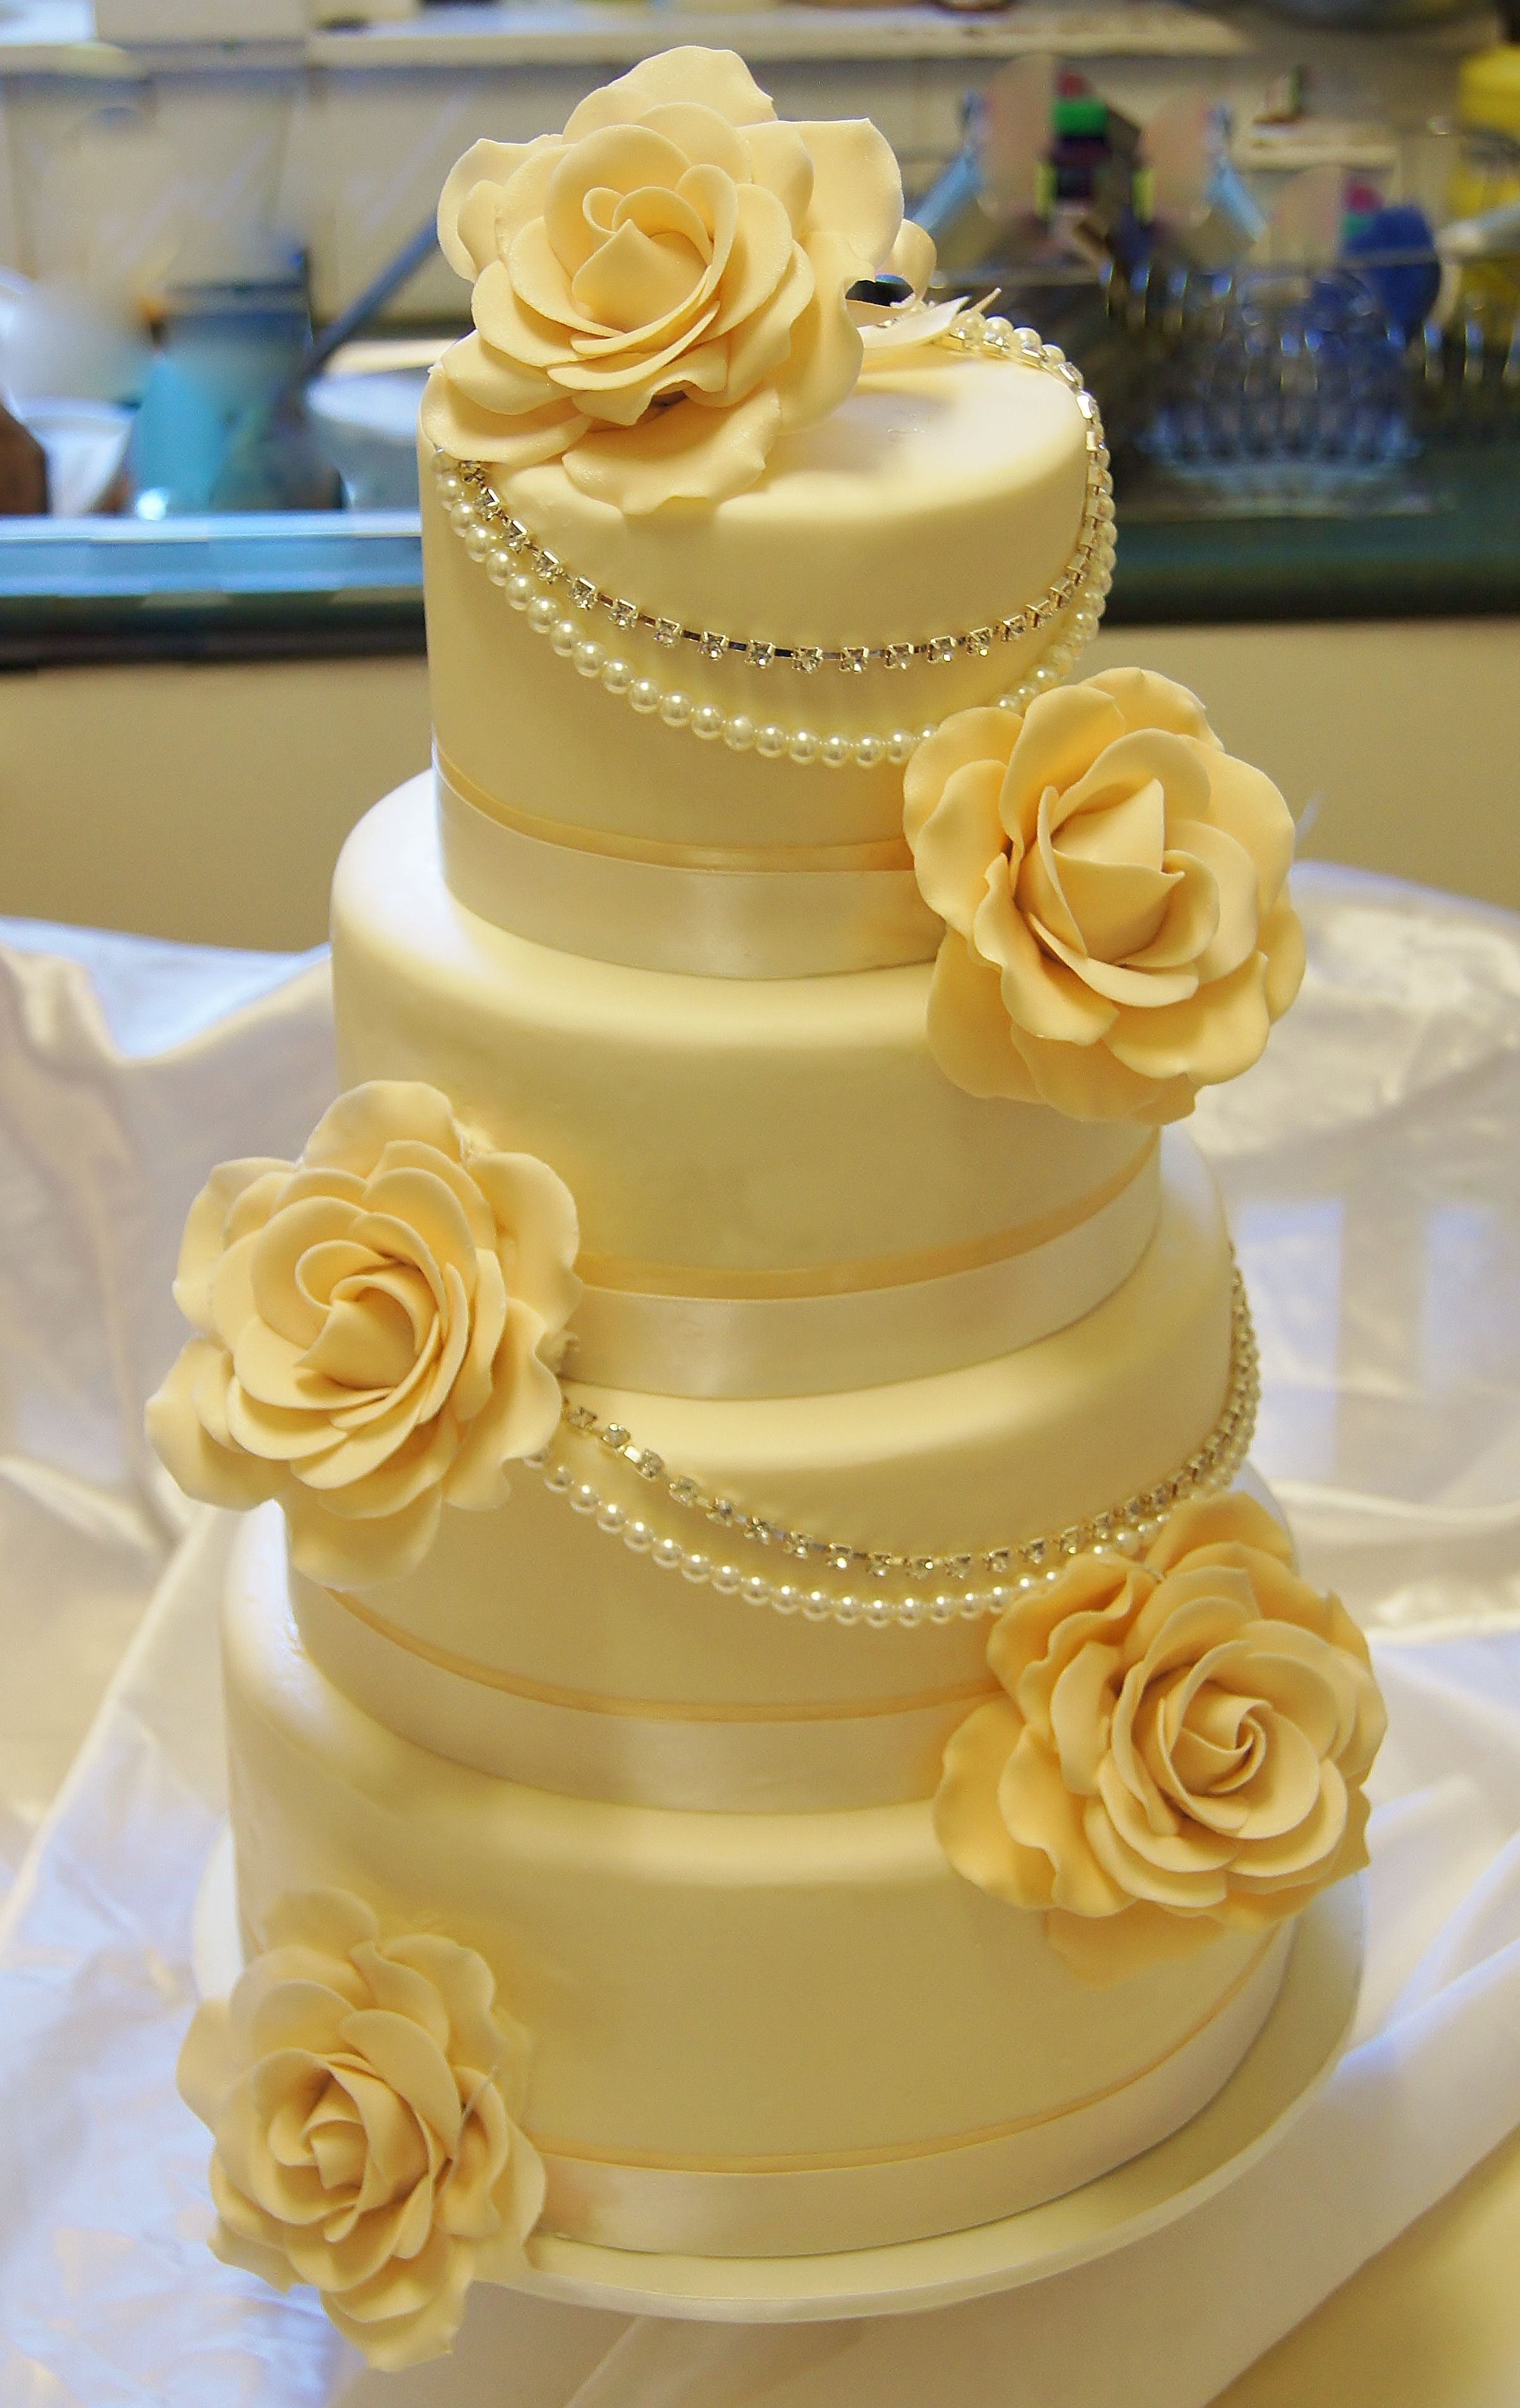 love wedding cake images gorgeous wedding cake with roses i the draped pearls 16956